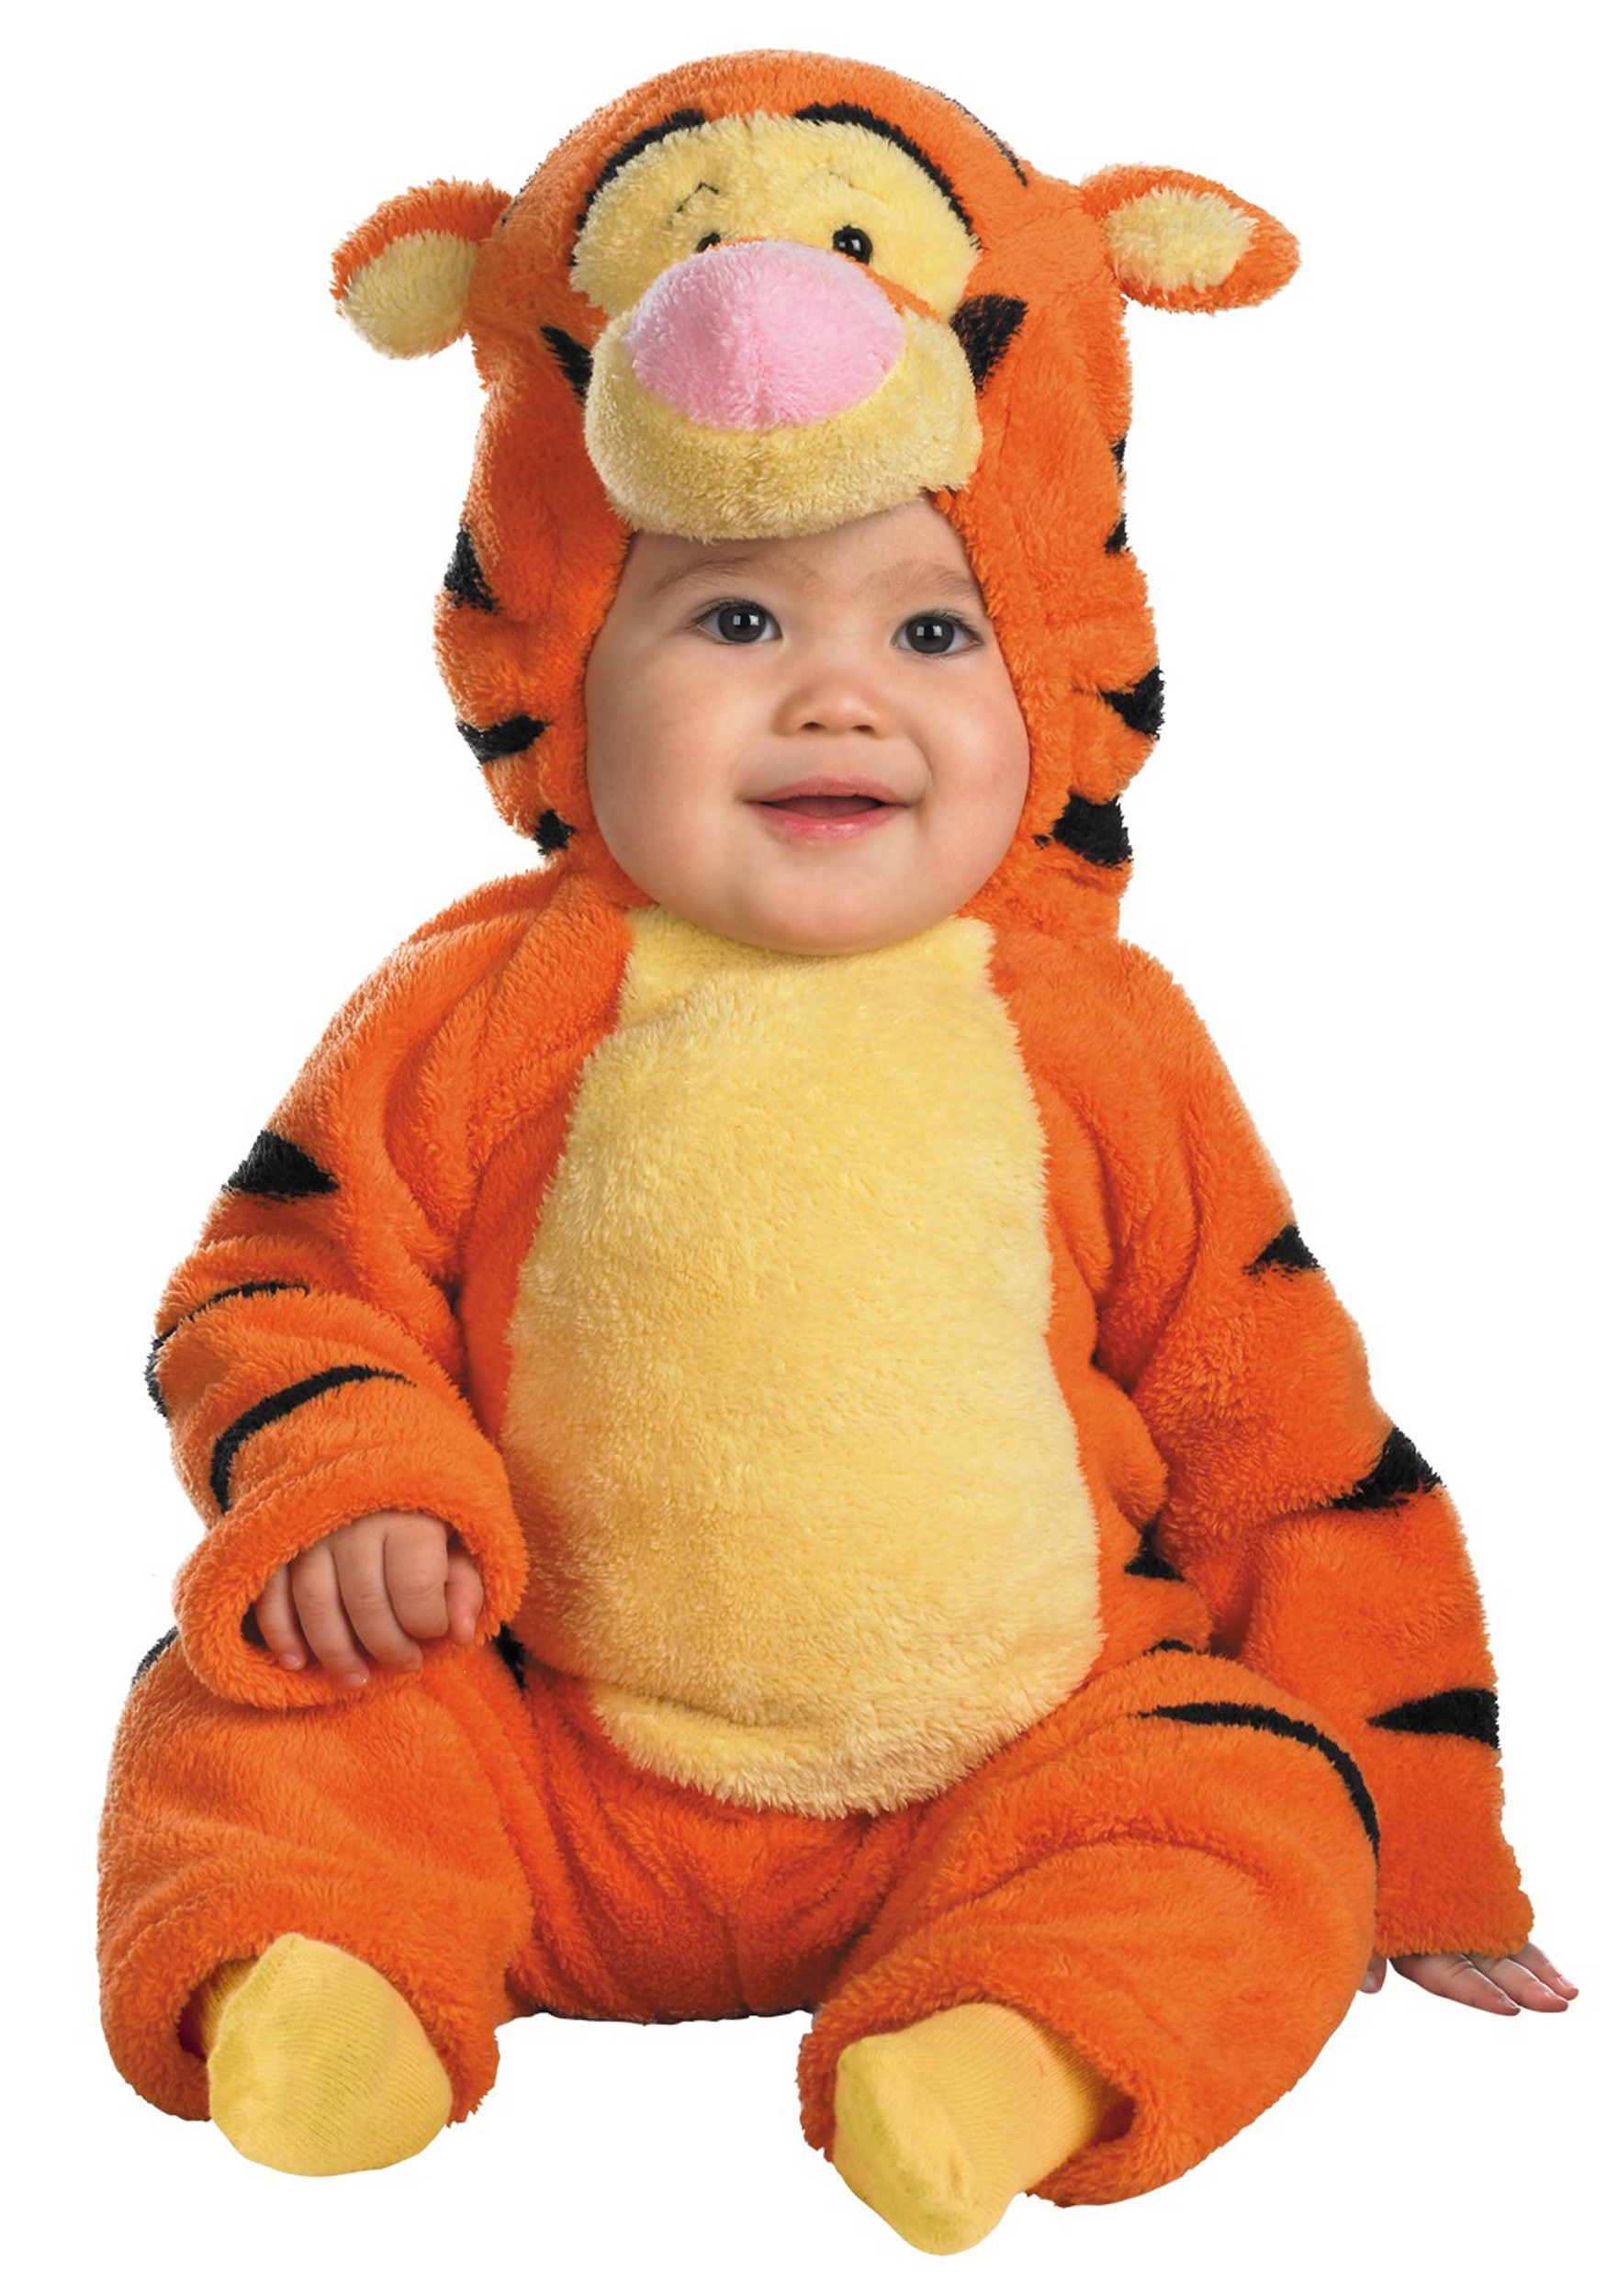 Winnie the pooh costumes tigger costumes piglet costumes for toddler deluxe tigger costume solutioingenieria Images